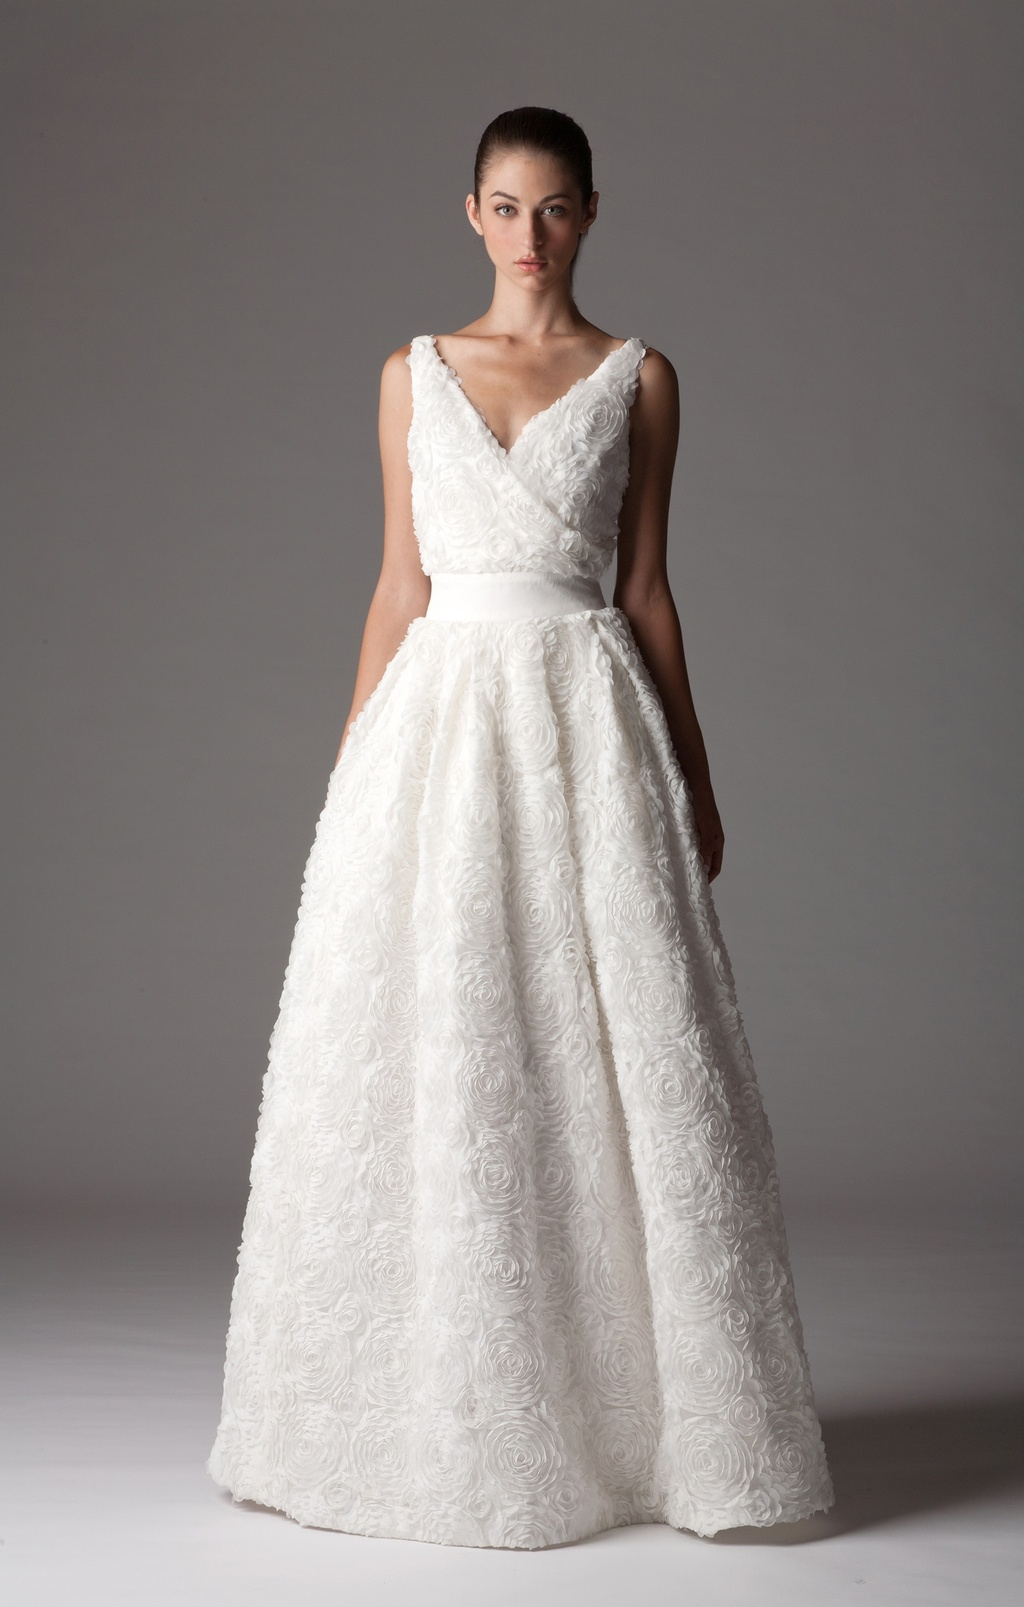 Aria-wedding-dresses-2012-bridal-gowns-v-neck-a-line.full